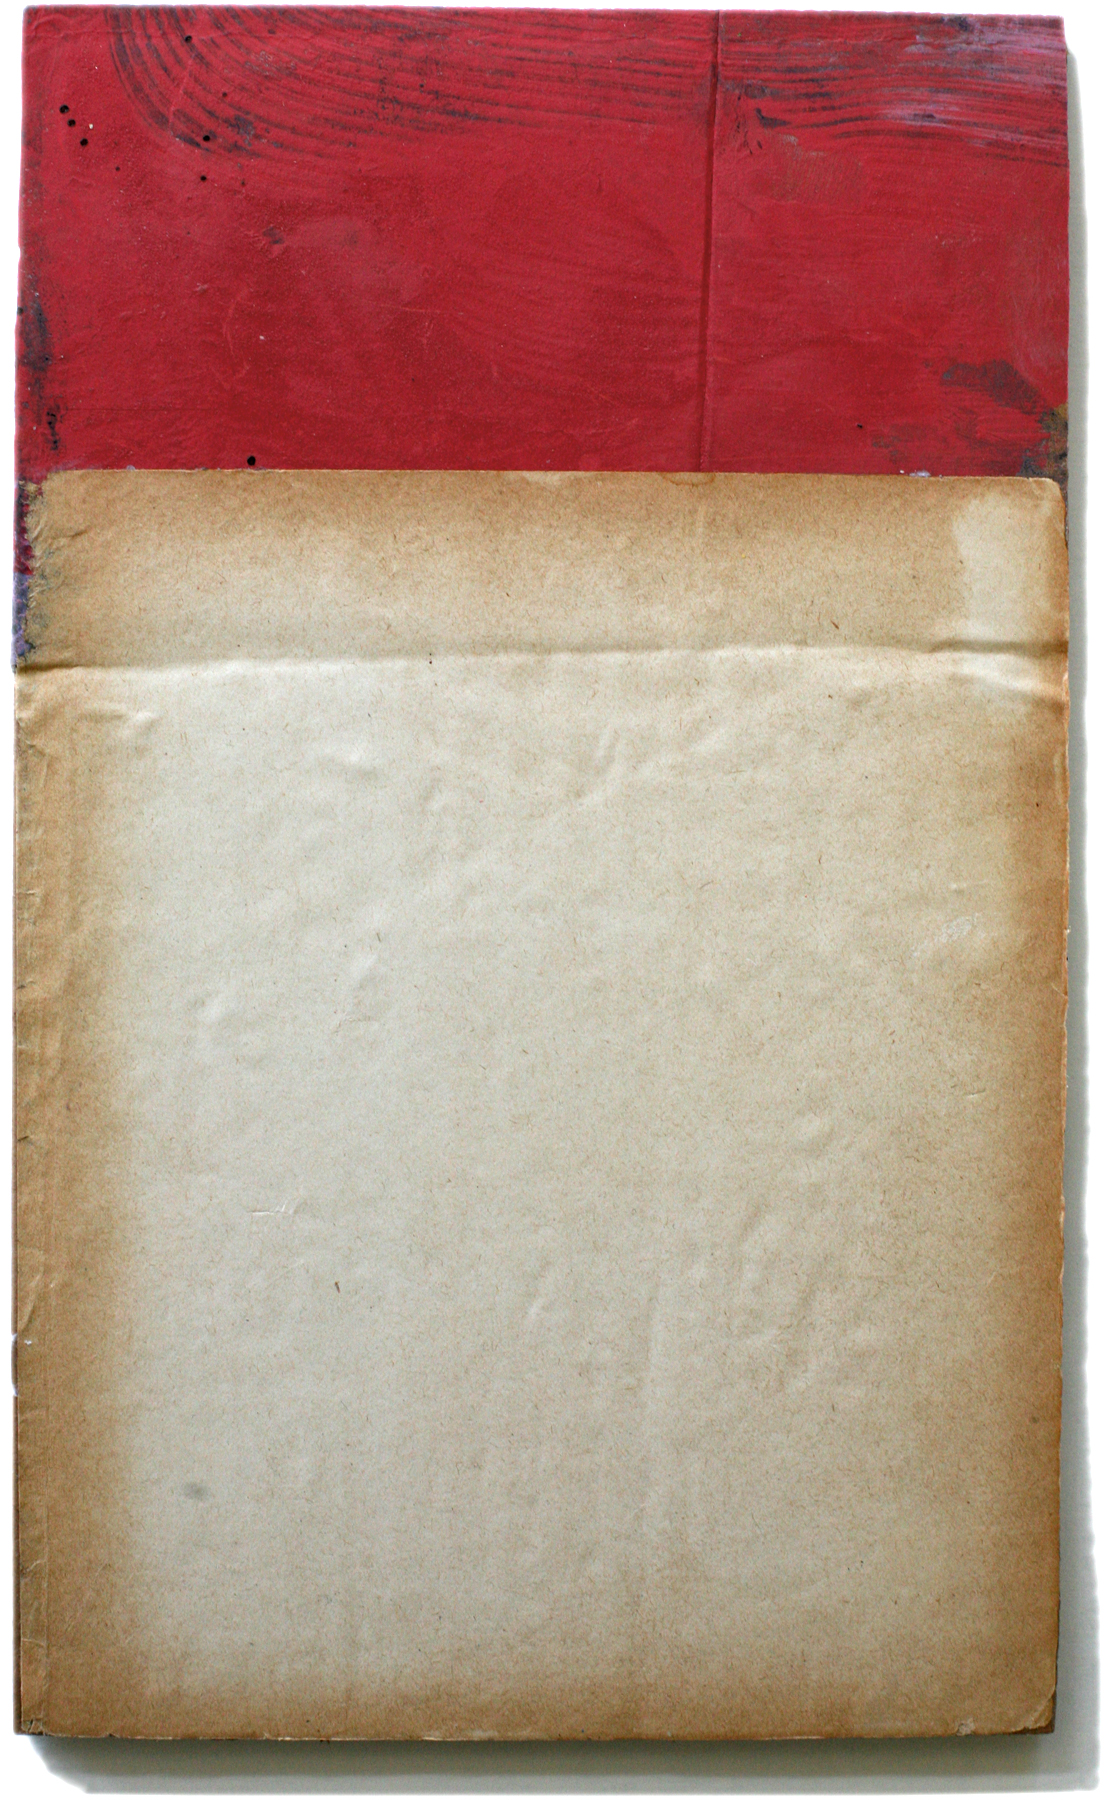 """Rothko, 10"""" x 6"""", 2008-2010 (private collection)"""